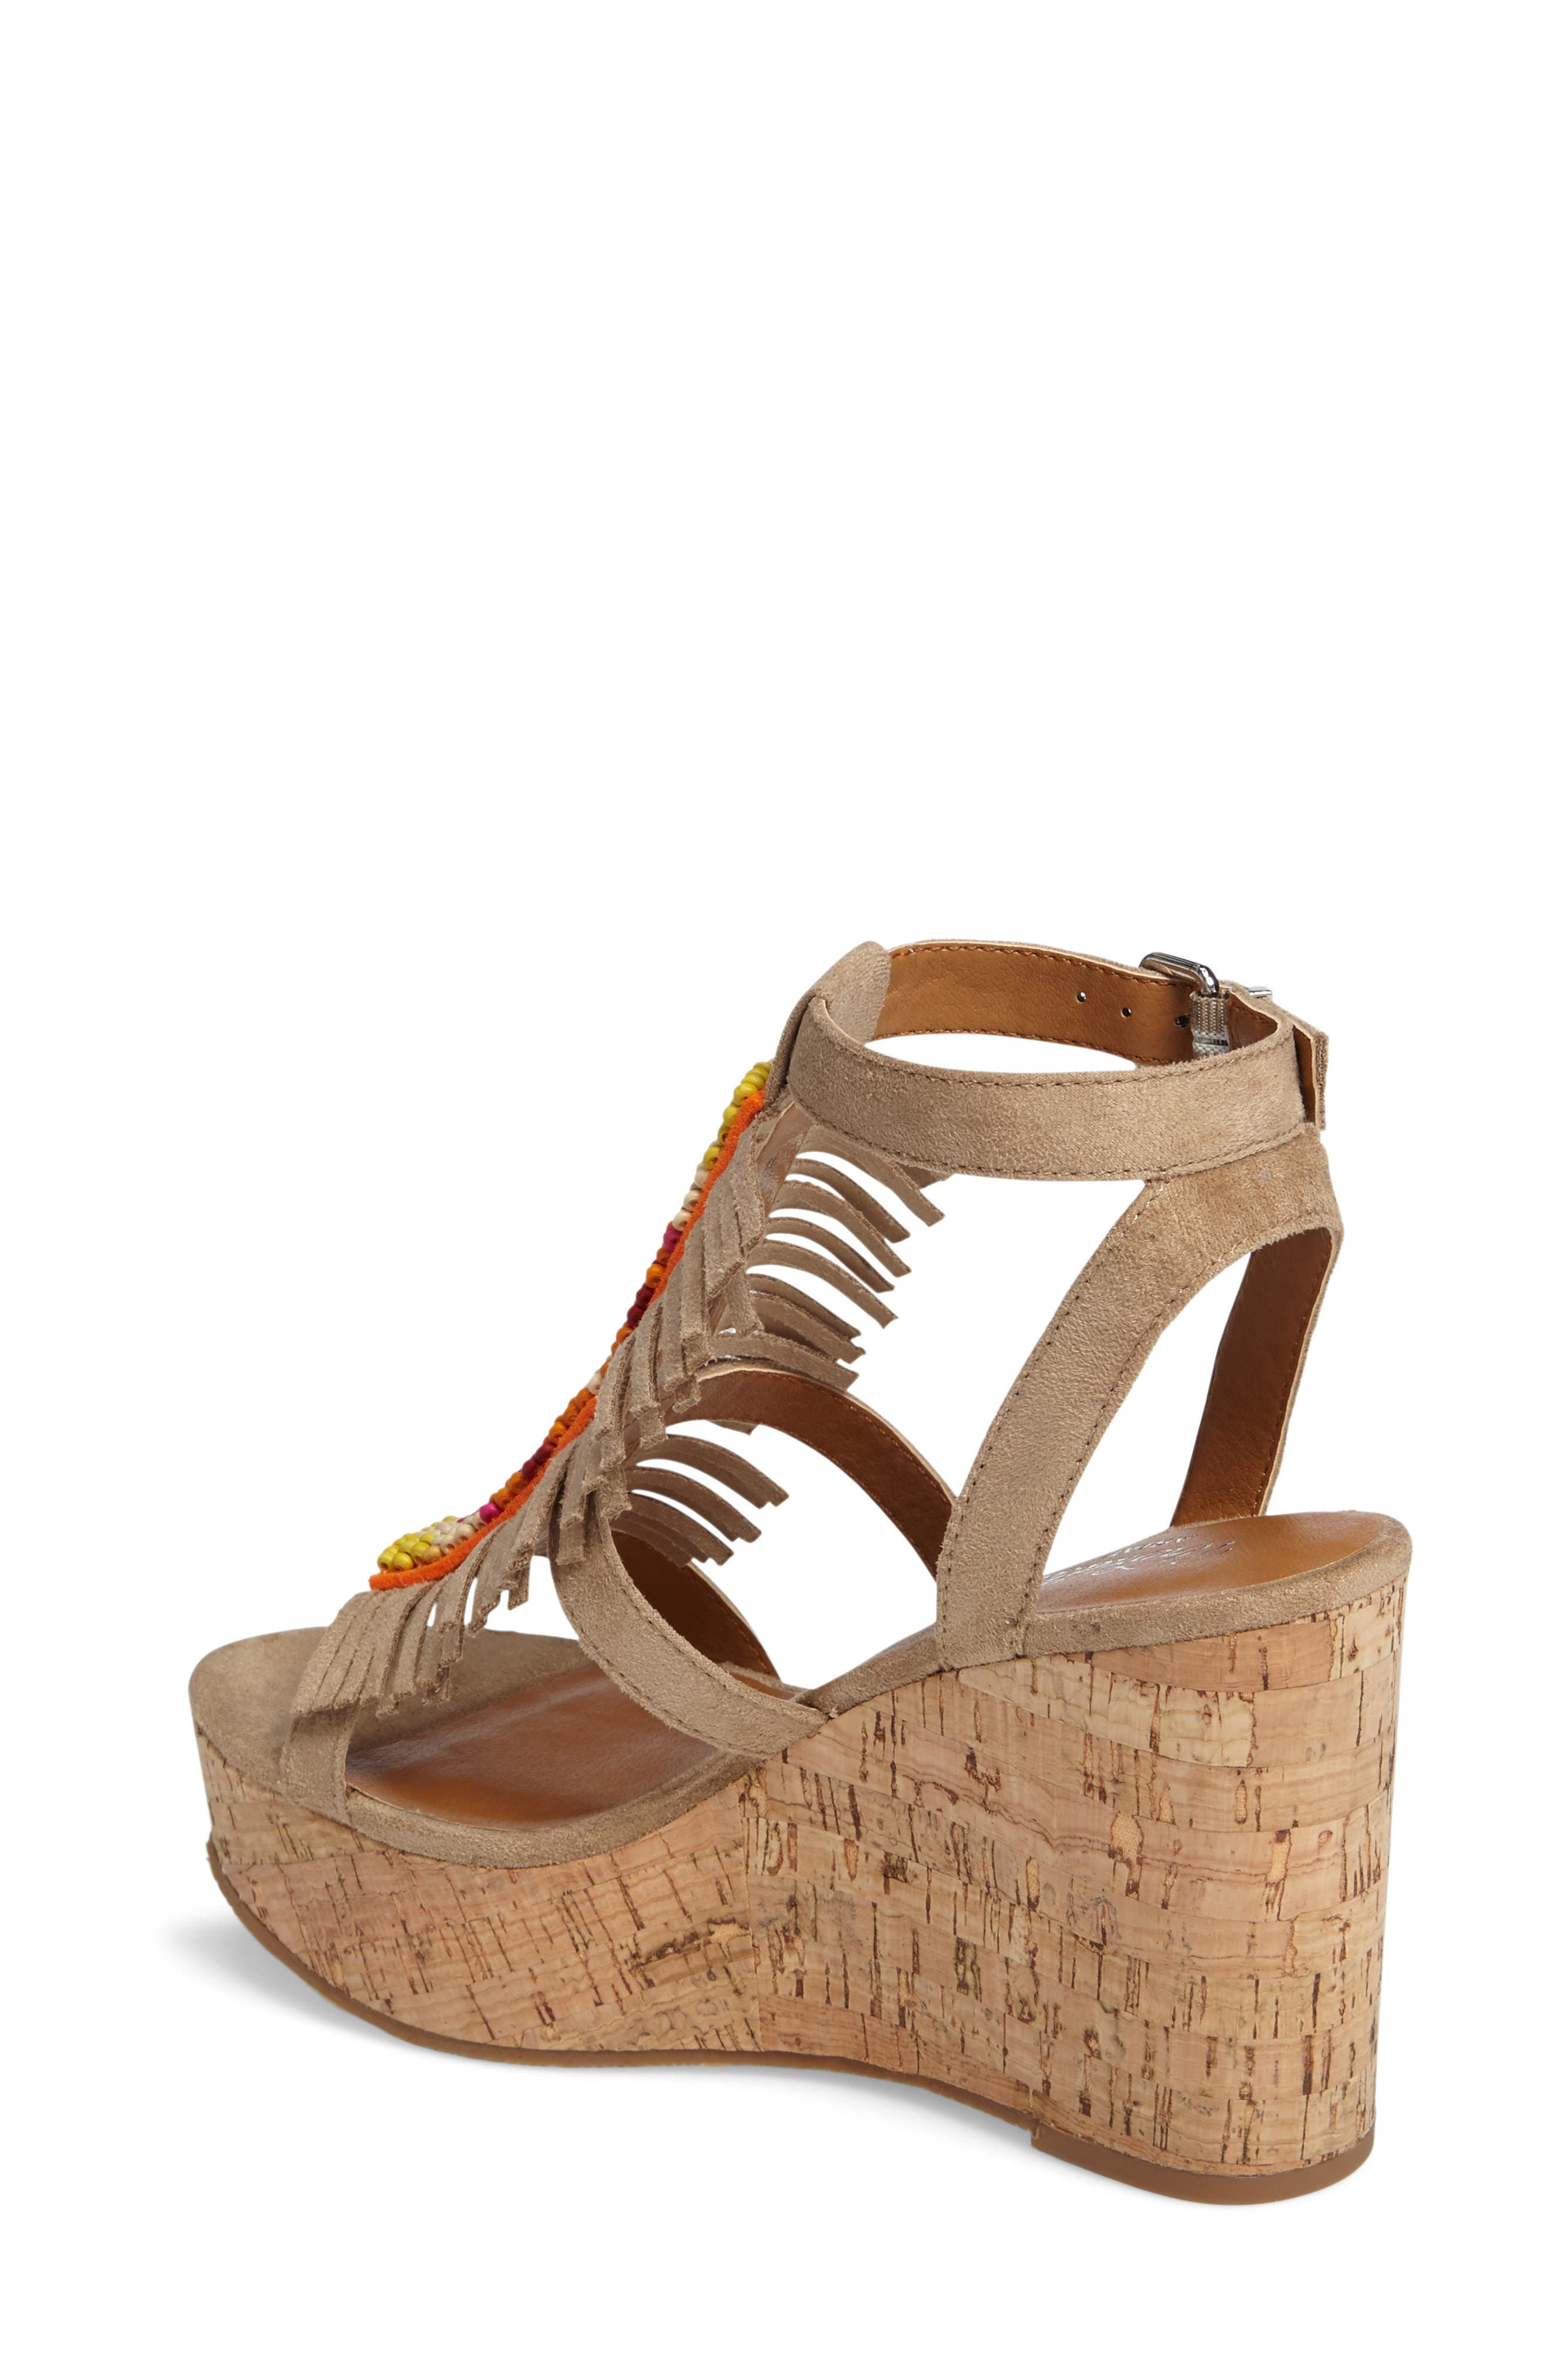 Unbridled Lolita Wedge Sandal,                             Alternate thumbnail 3, color,